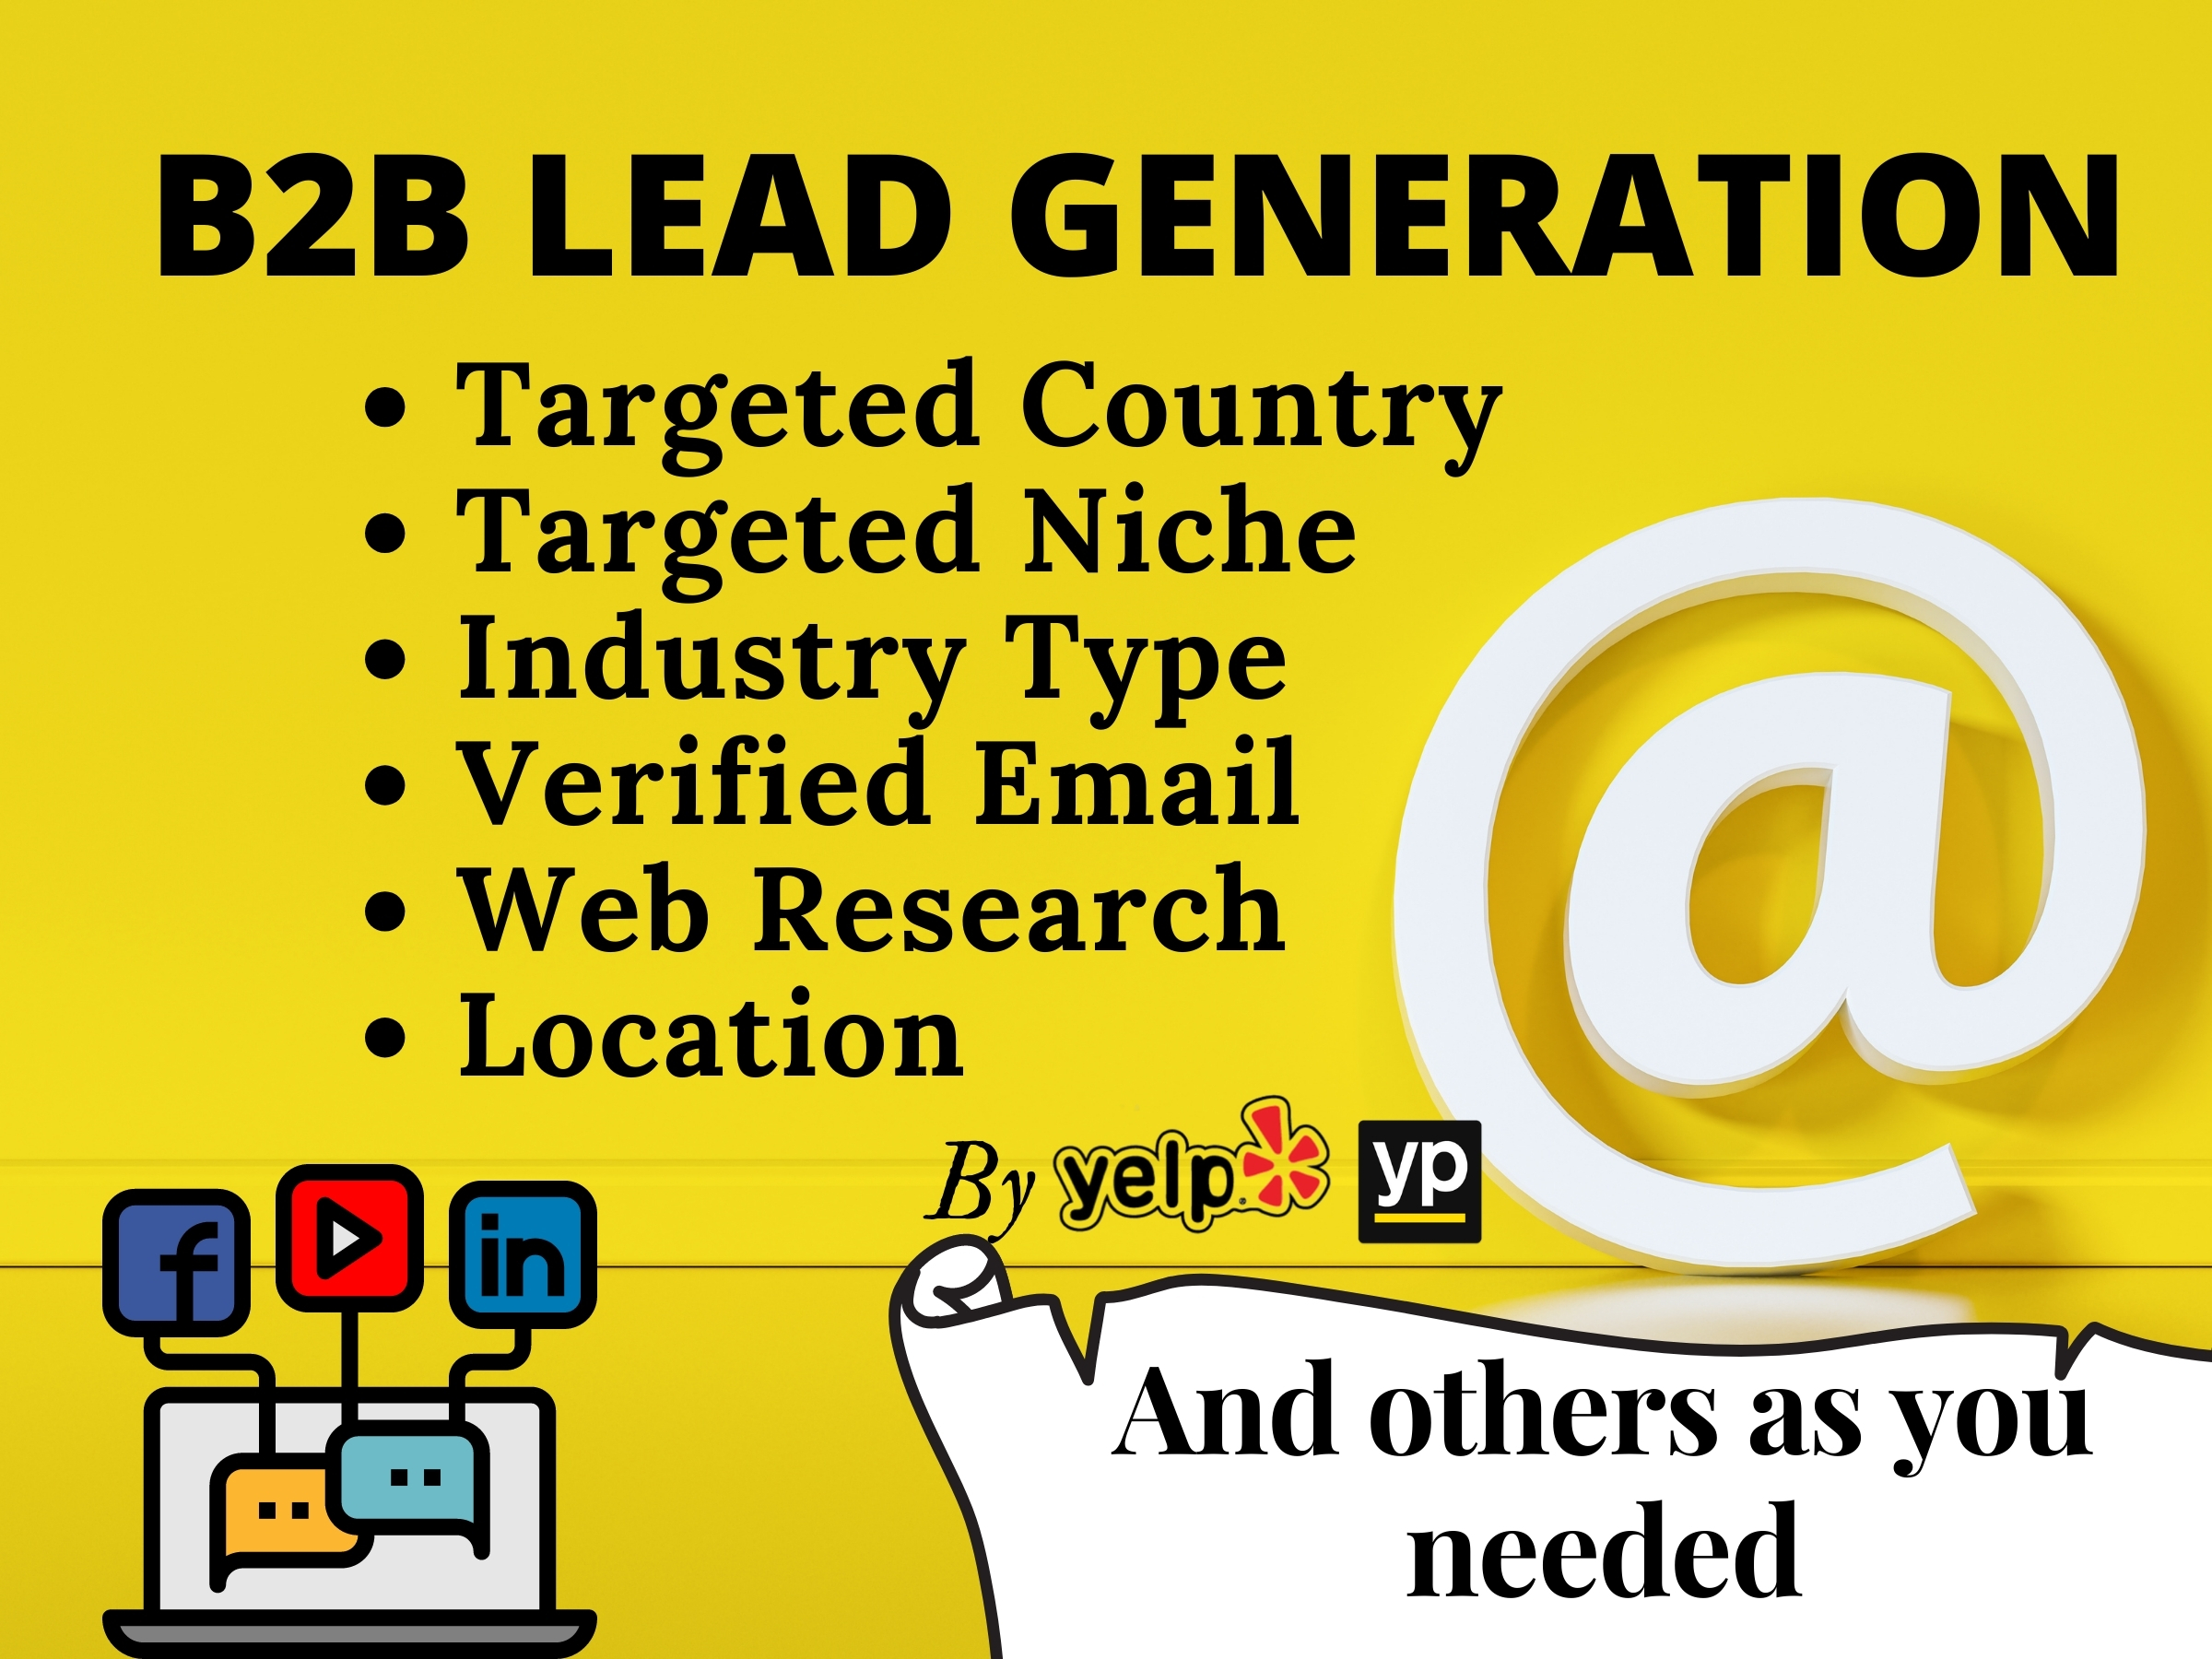 I Will Provide B2B 2k Lead Generation and Targeted Niche Based Email List